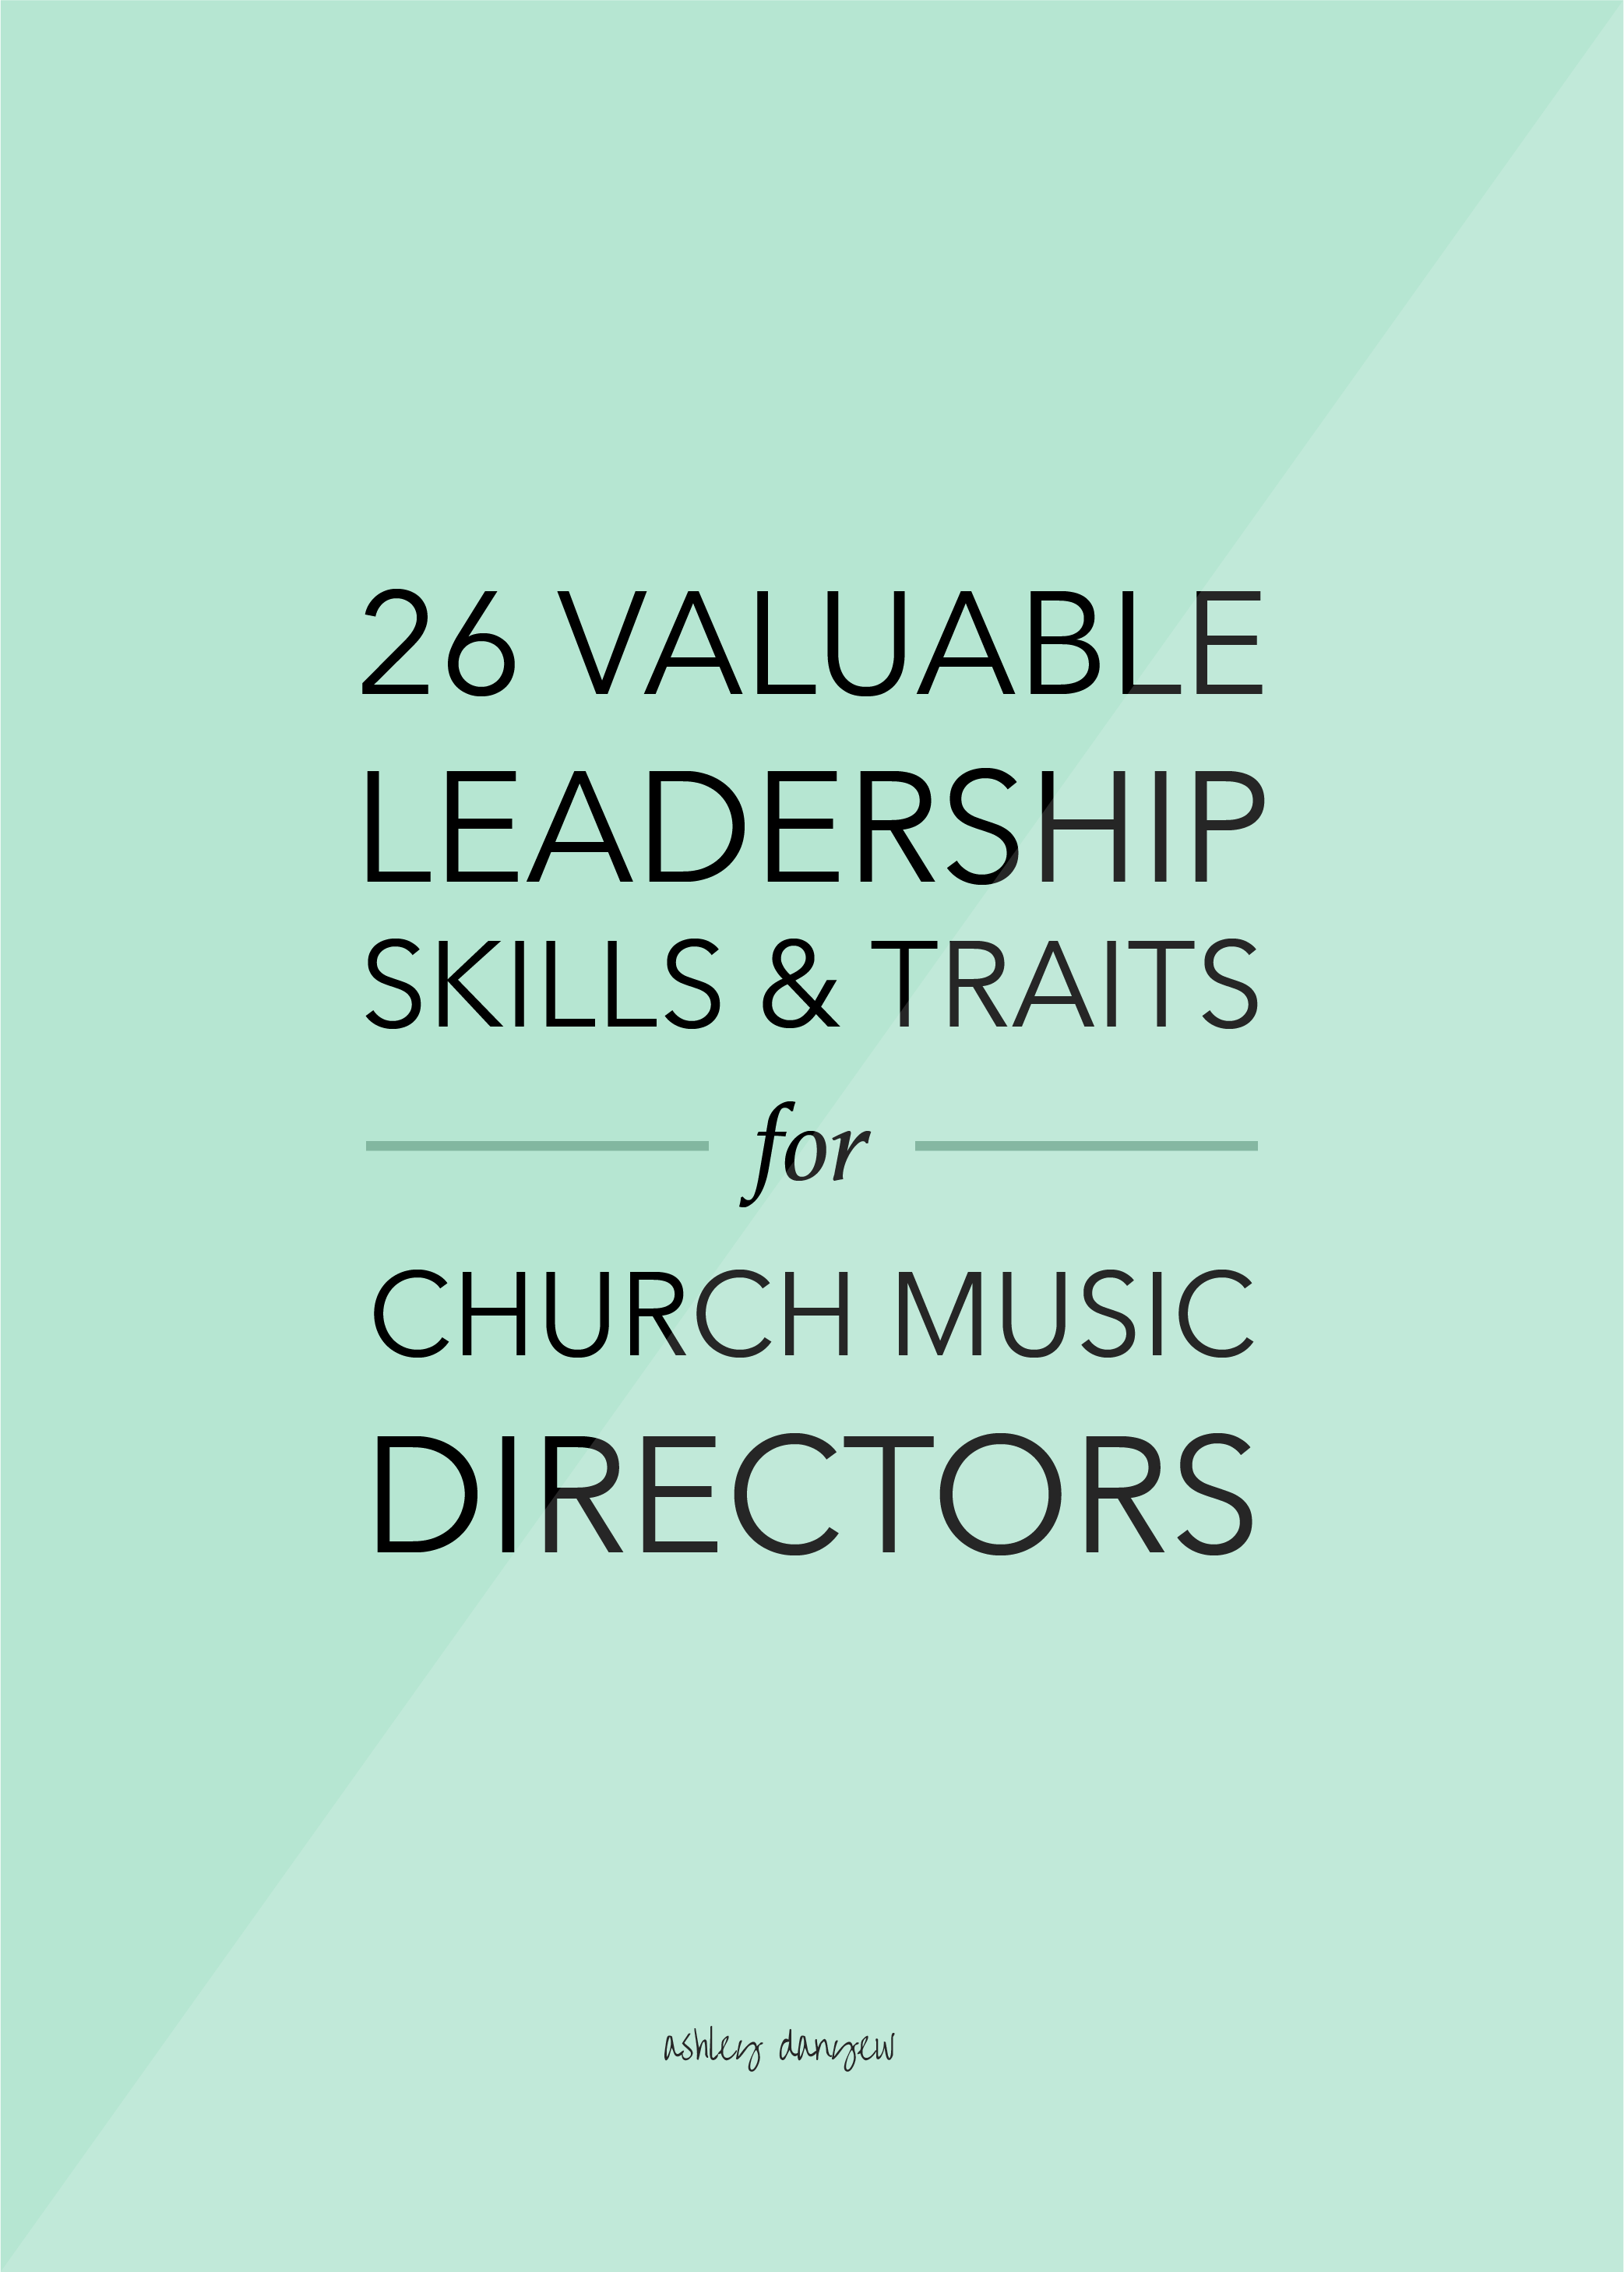 Copy of 26 Valuable Leadership Skills & Traits for Church Music Directors